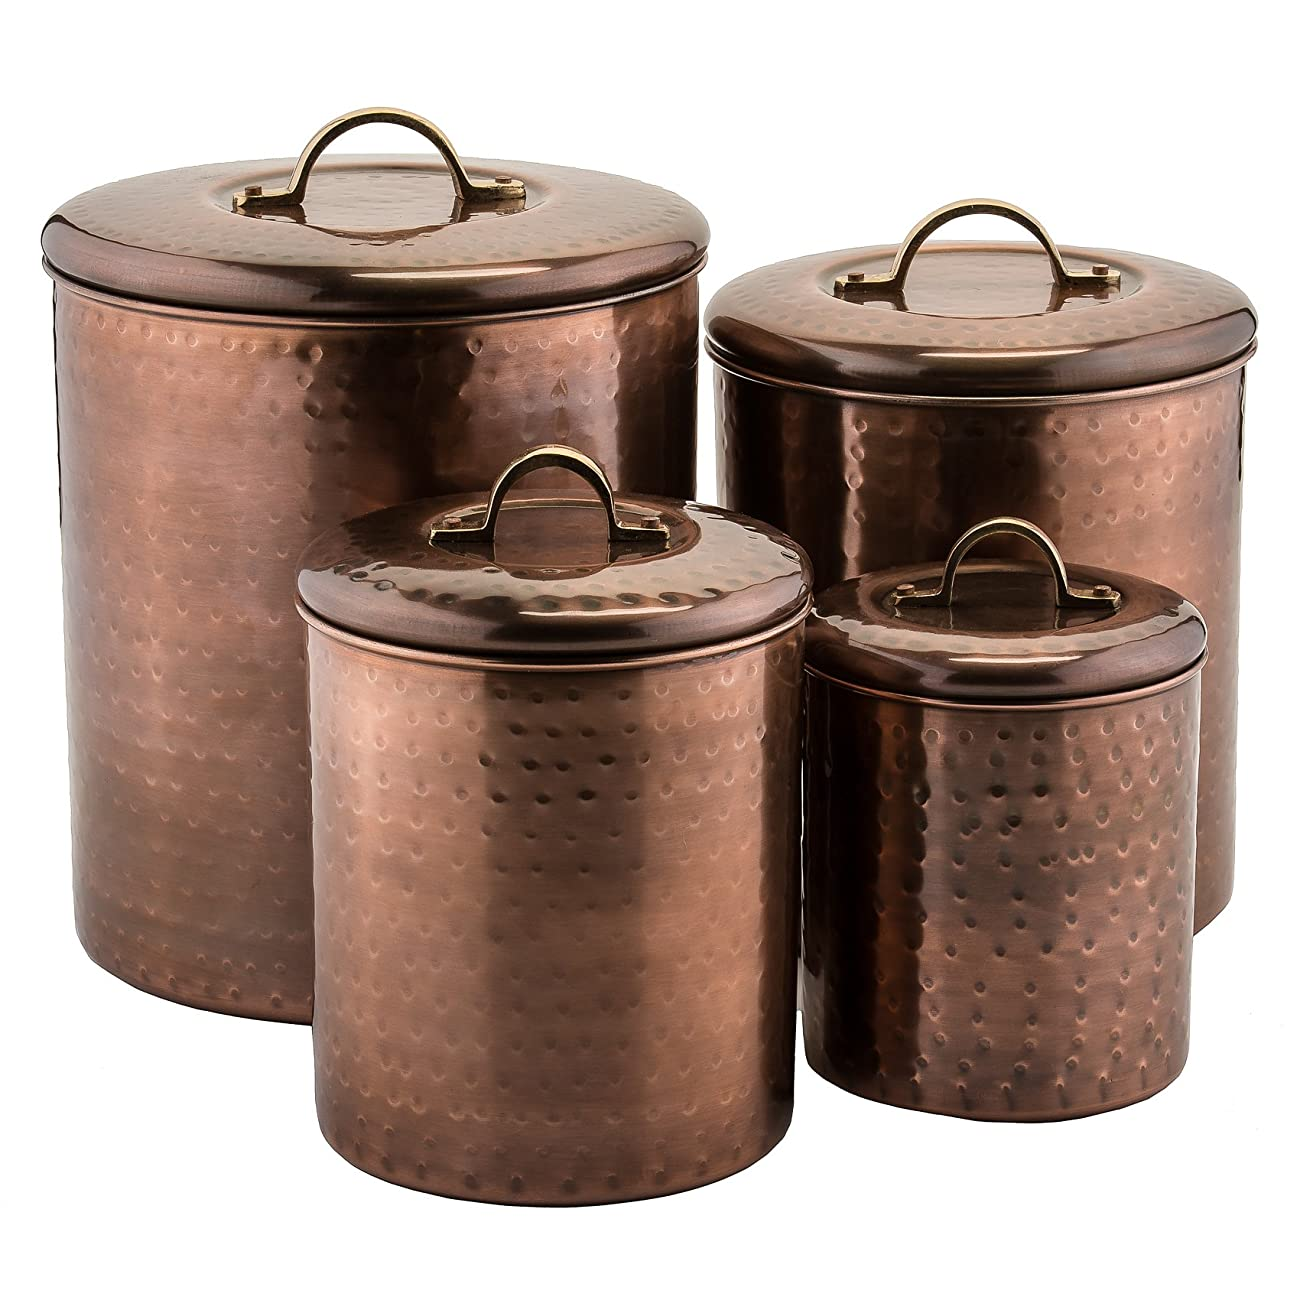 Old Dutch 4 Piece Hammered Canister Set, Antique Copper 0